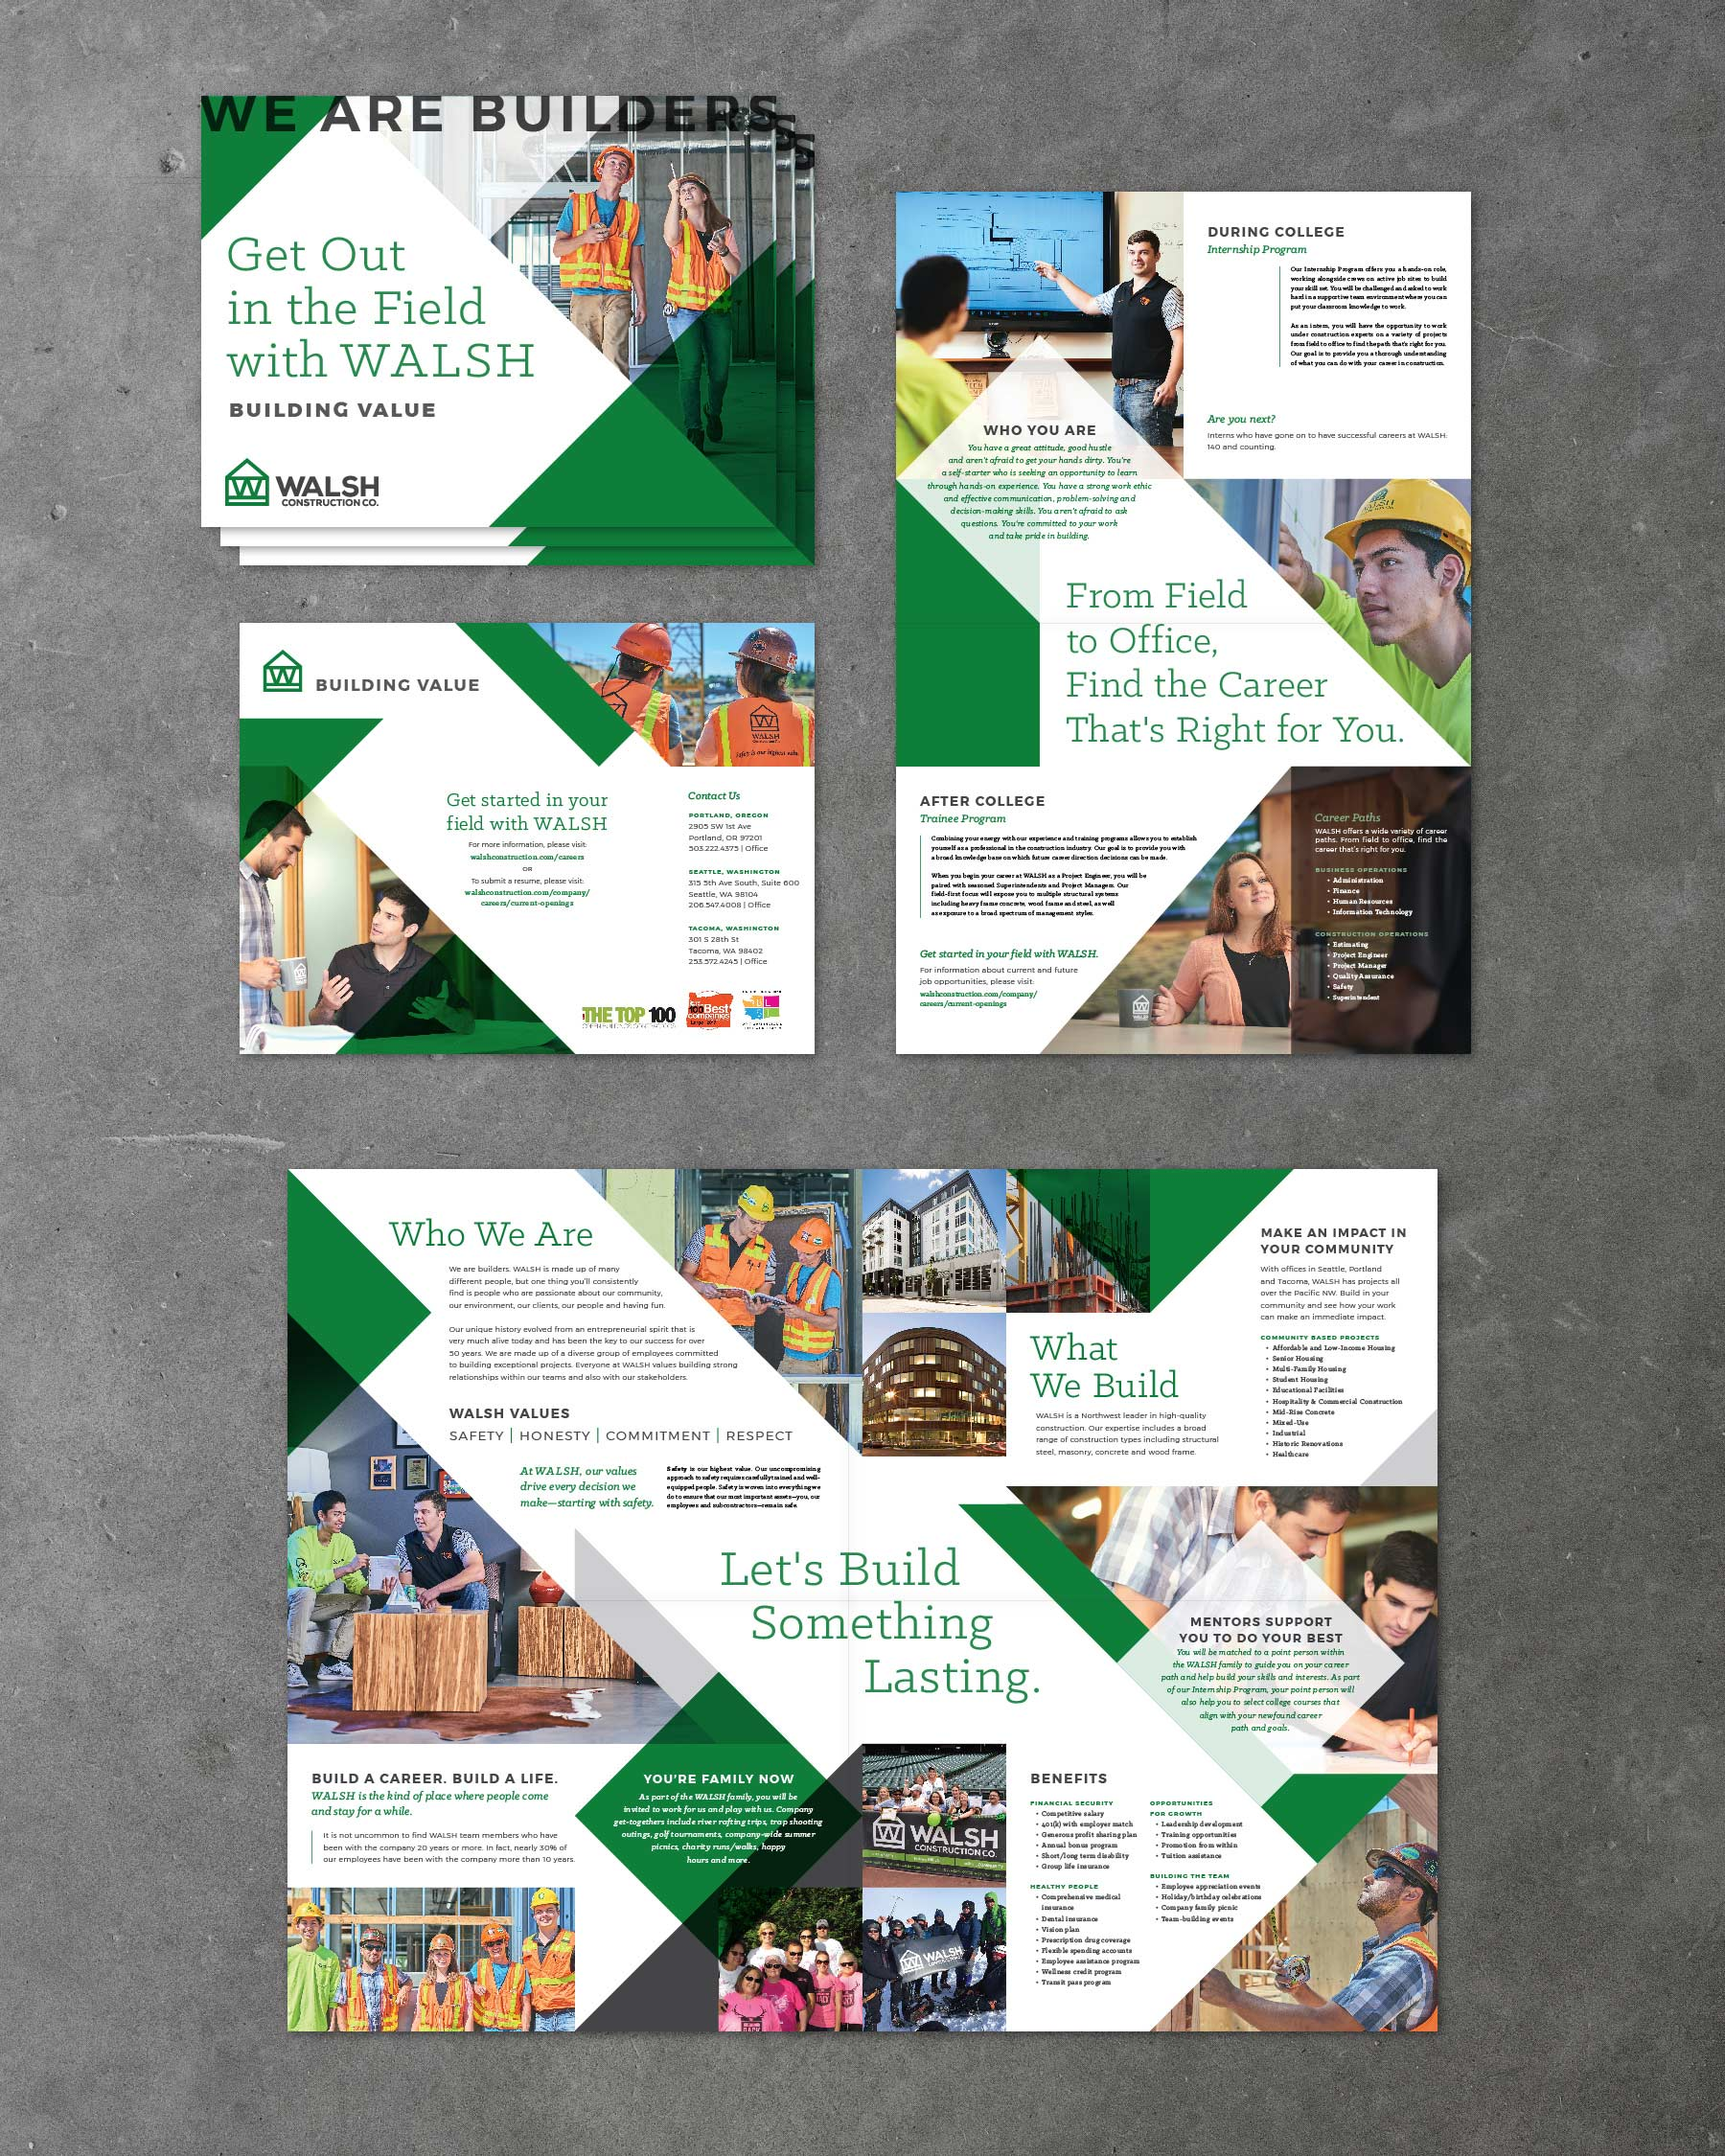 WALSH-recruitment-brochure.jpg